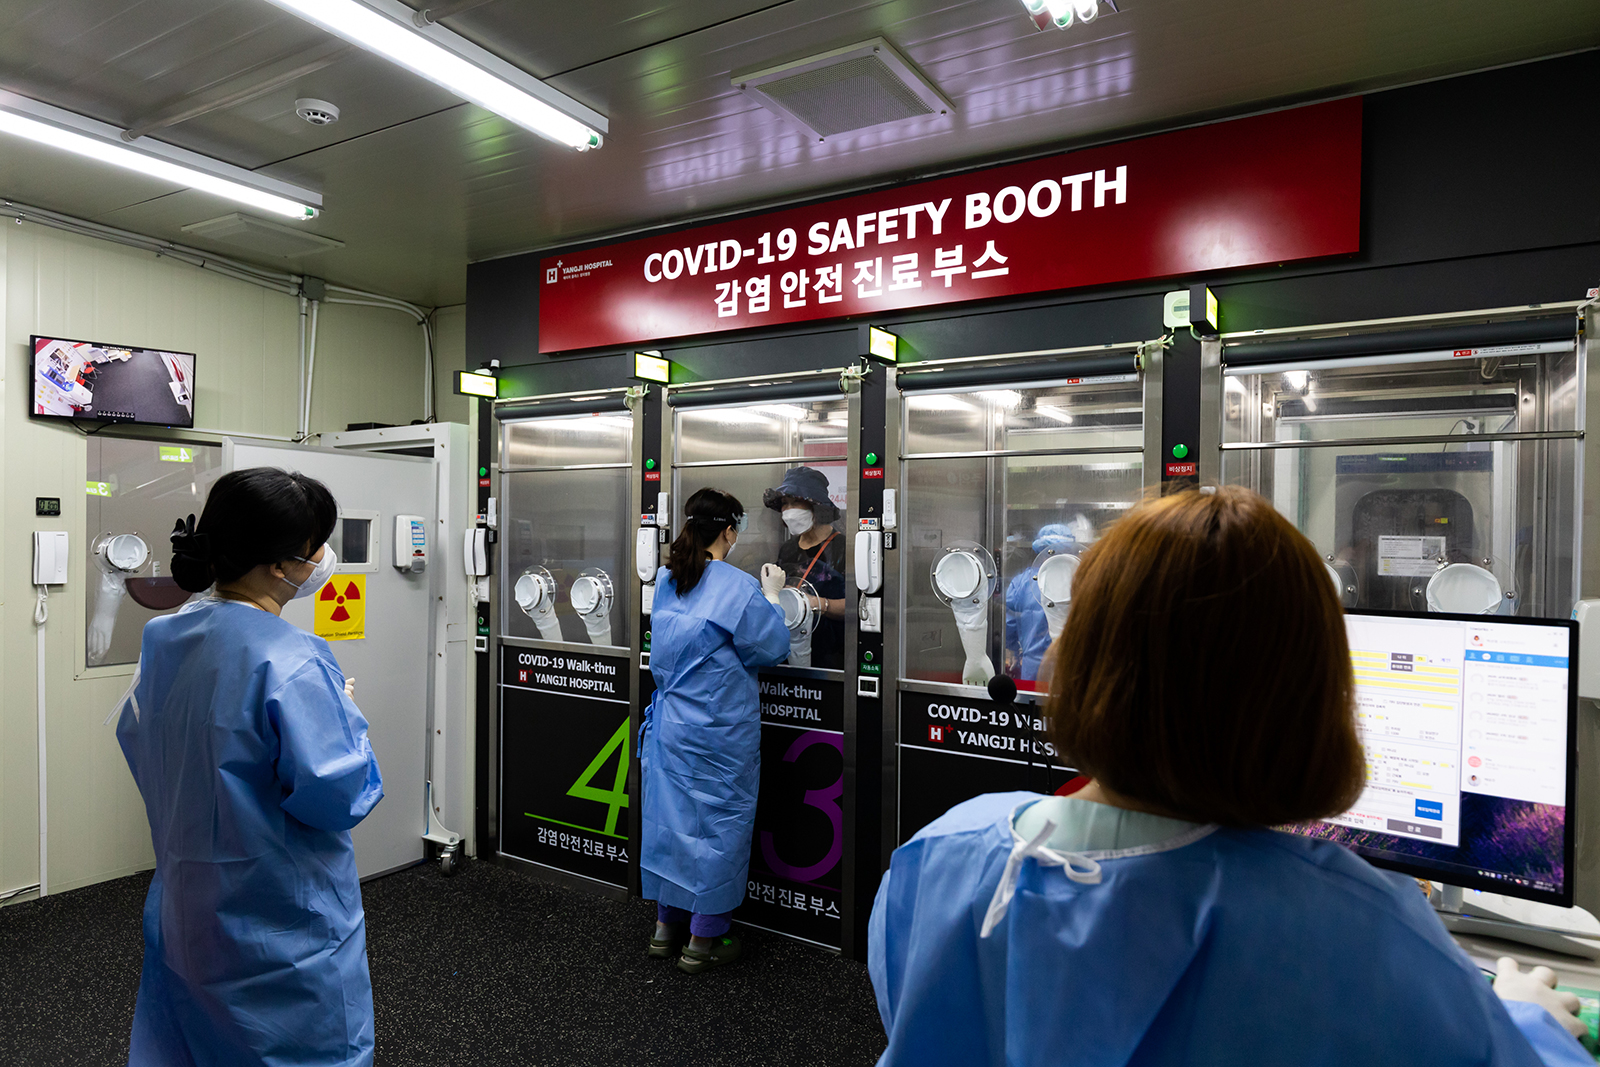 A medical worker wearing personal protective equipment (PPE), center, speaks with a visitor from inside the Covid-19 safety booth in the walk-thru testing center at H Plus Yangji Hospital in Seoul, South Korea, on July 24.